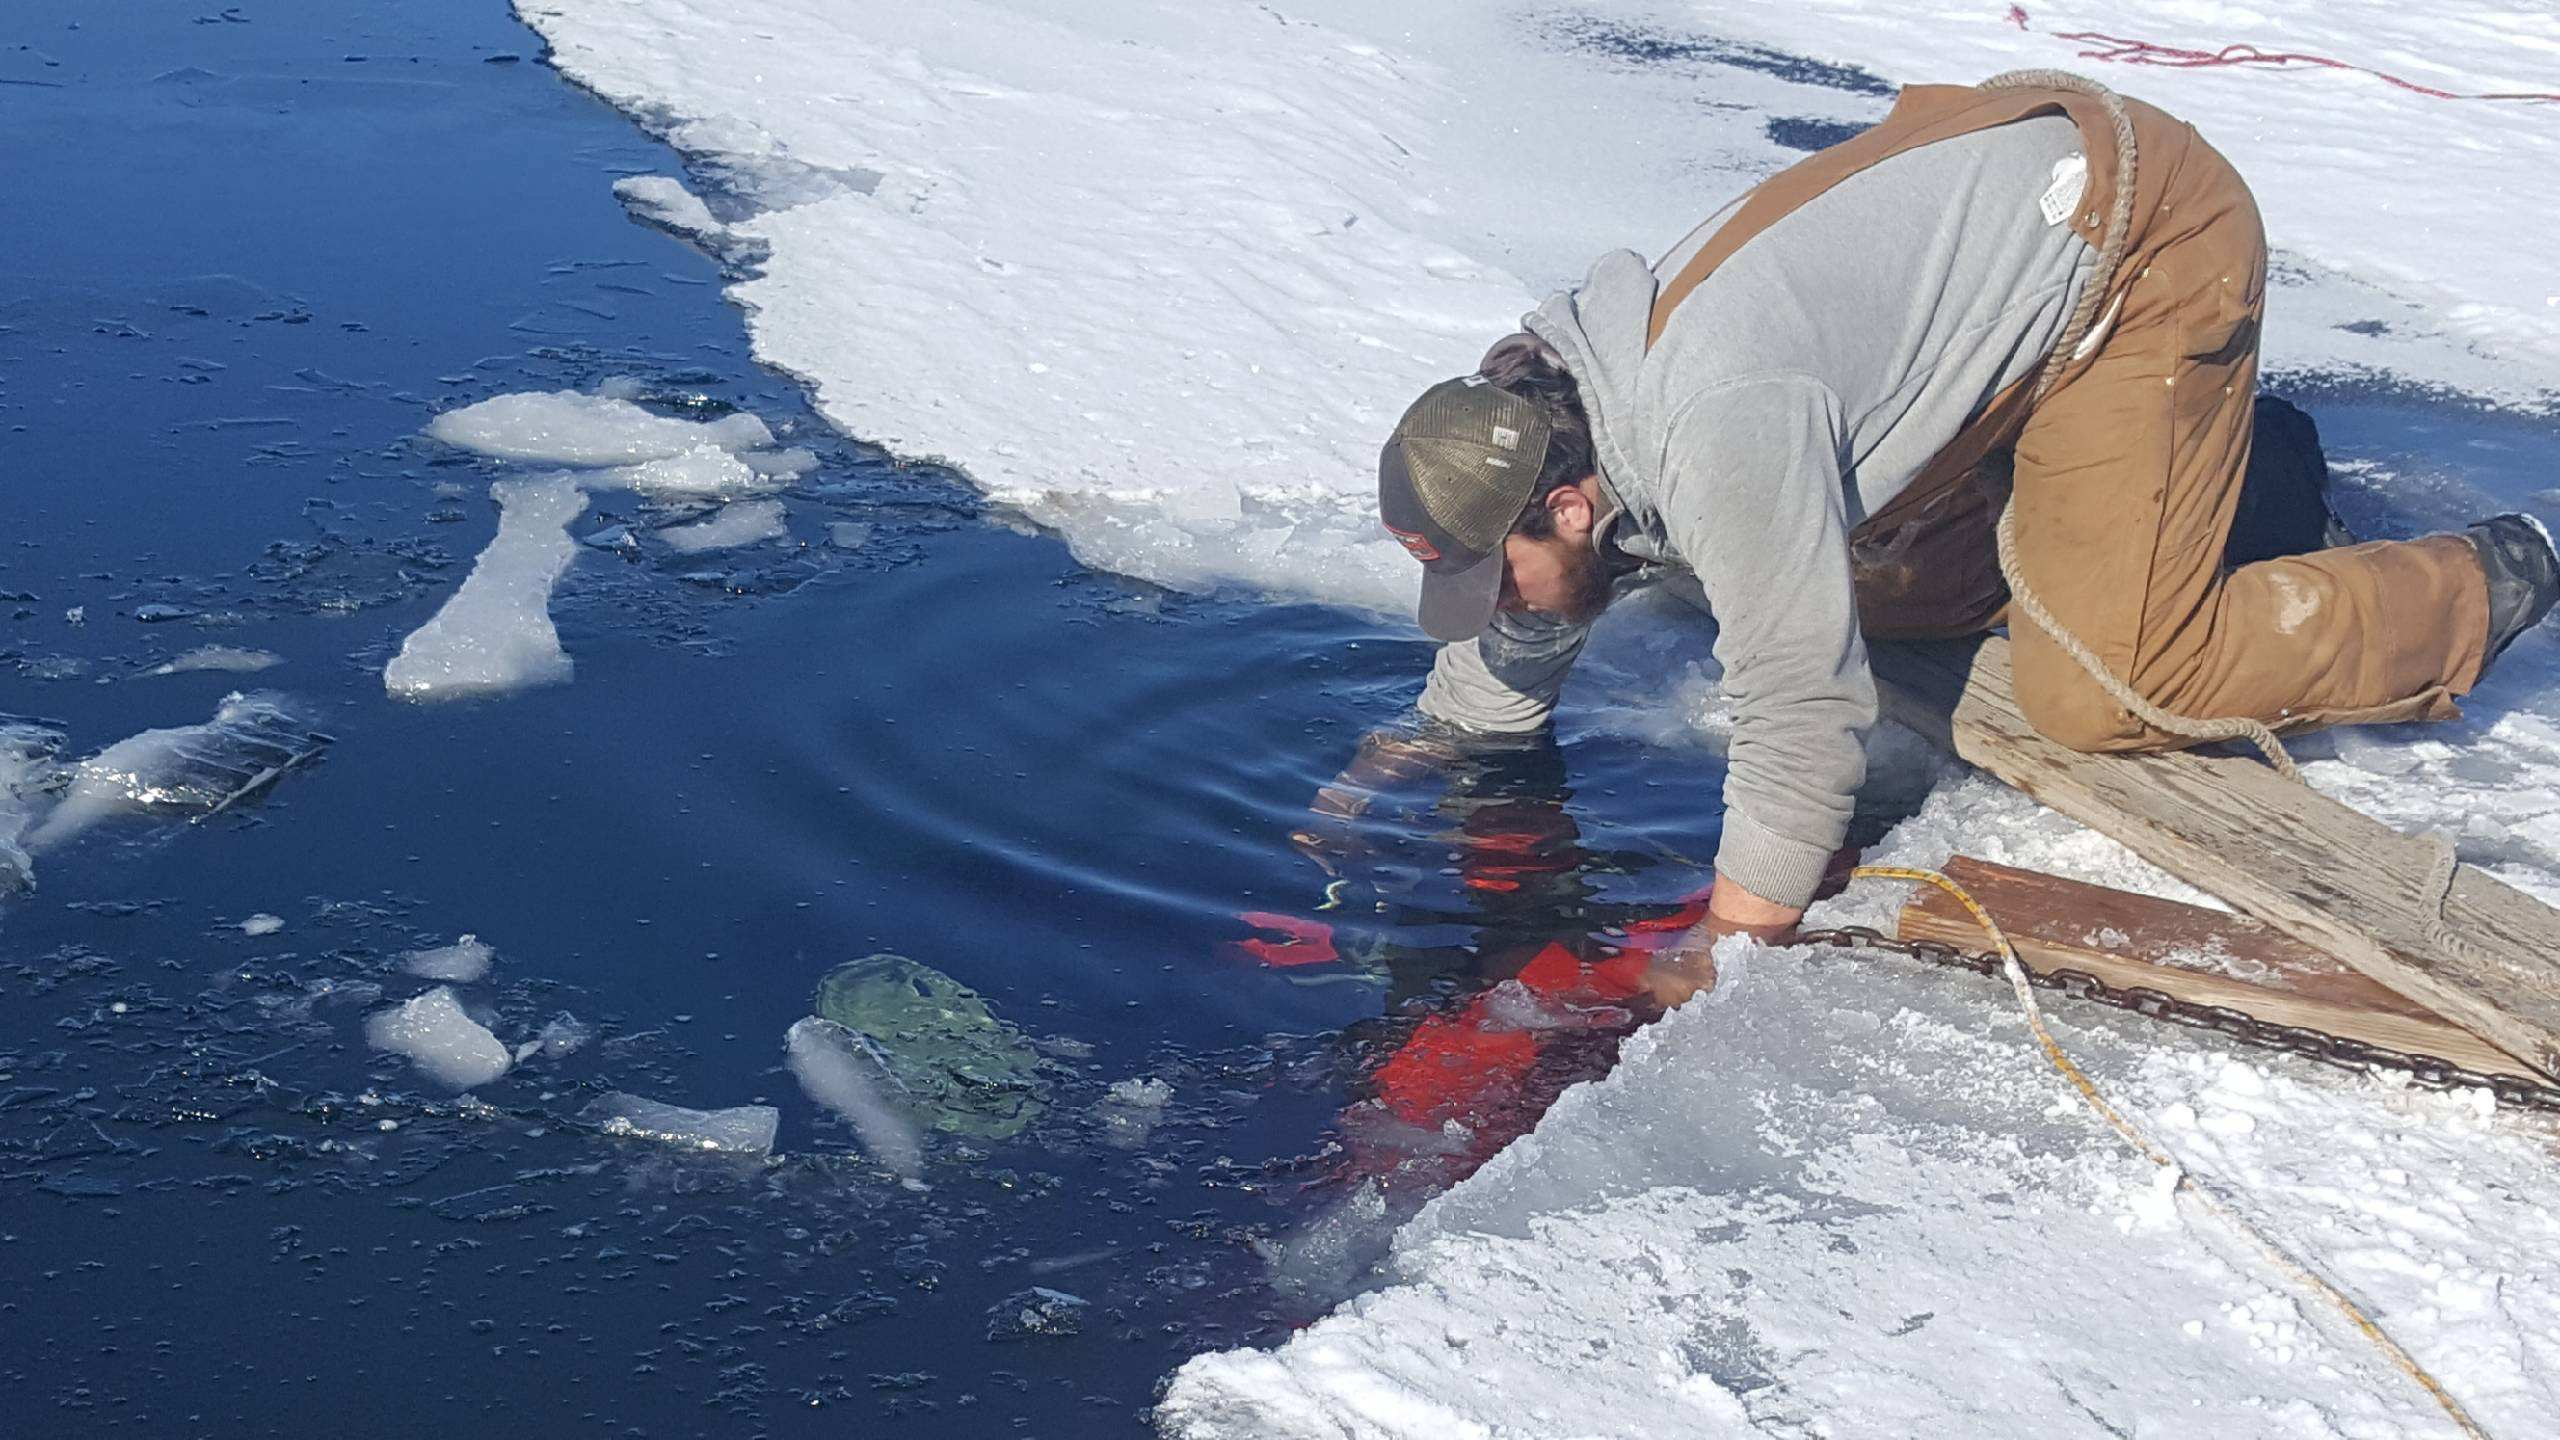 Local Ice Fisherman Thanks Many for Help After 4-Wheeler Goes Through Ice